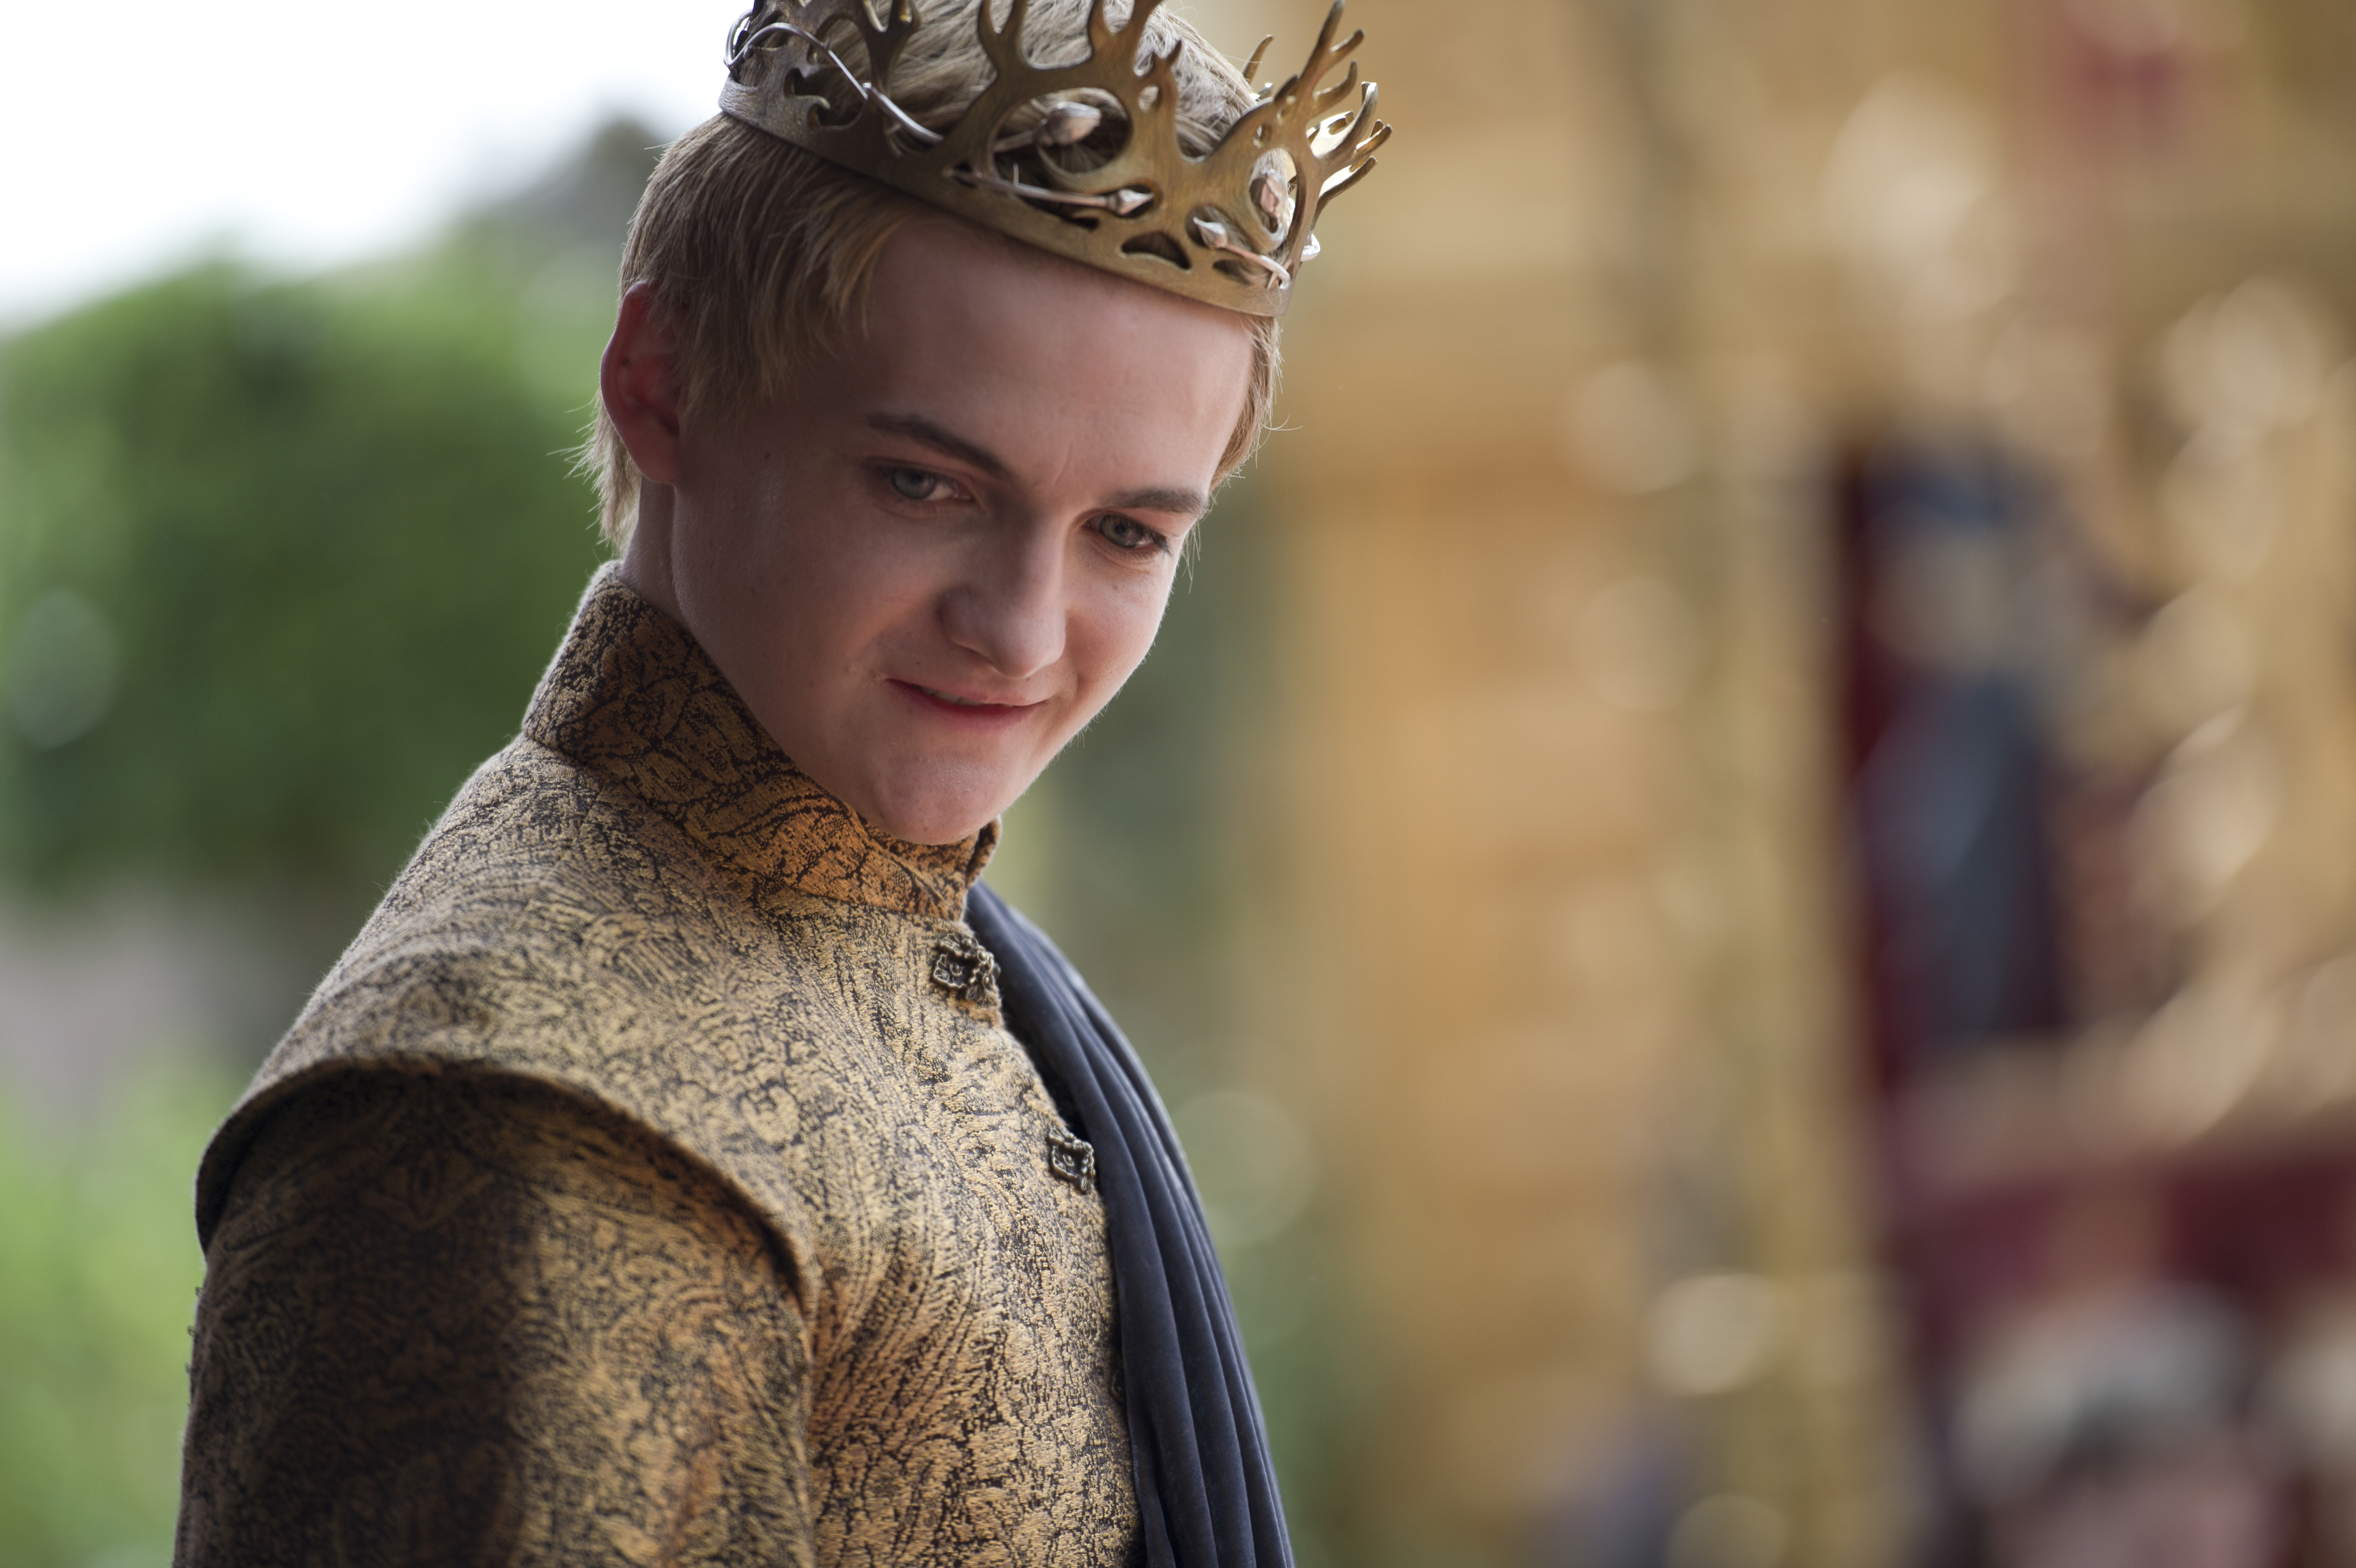 Jack Gleeson as Joffrey Baratheon on Game of Thrones